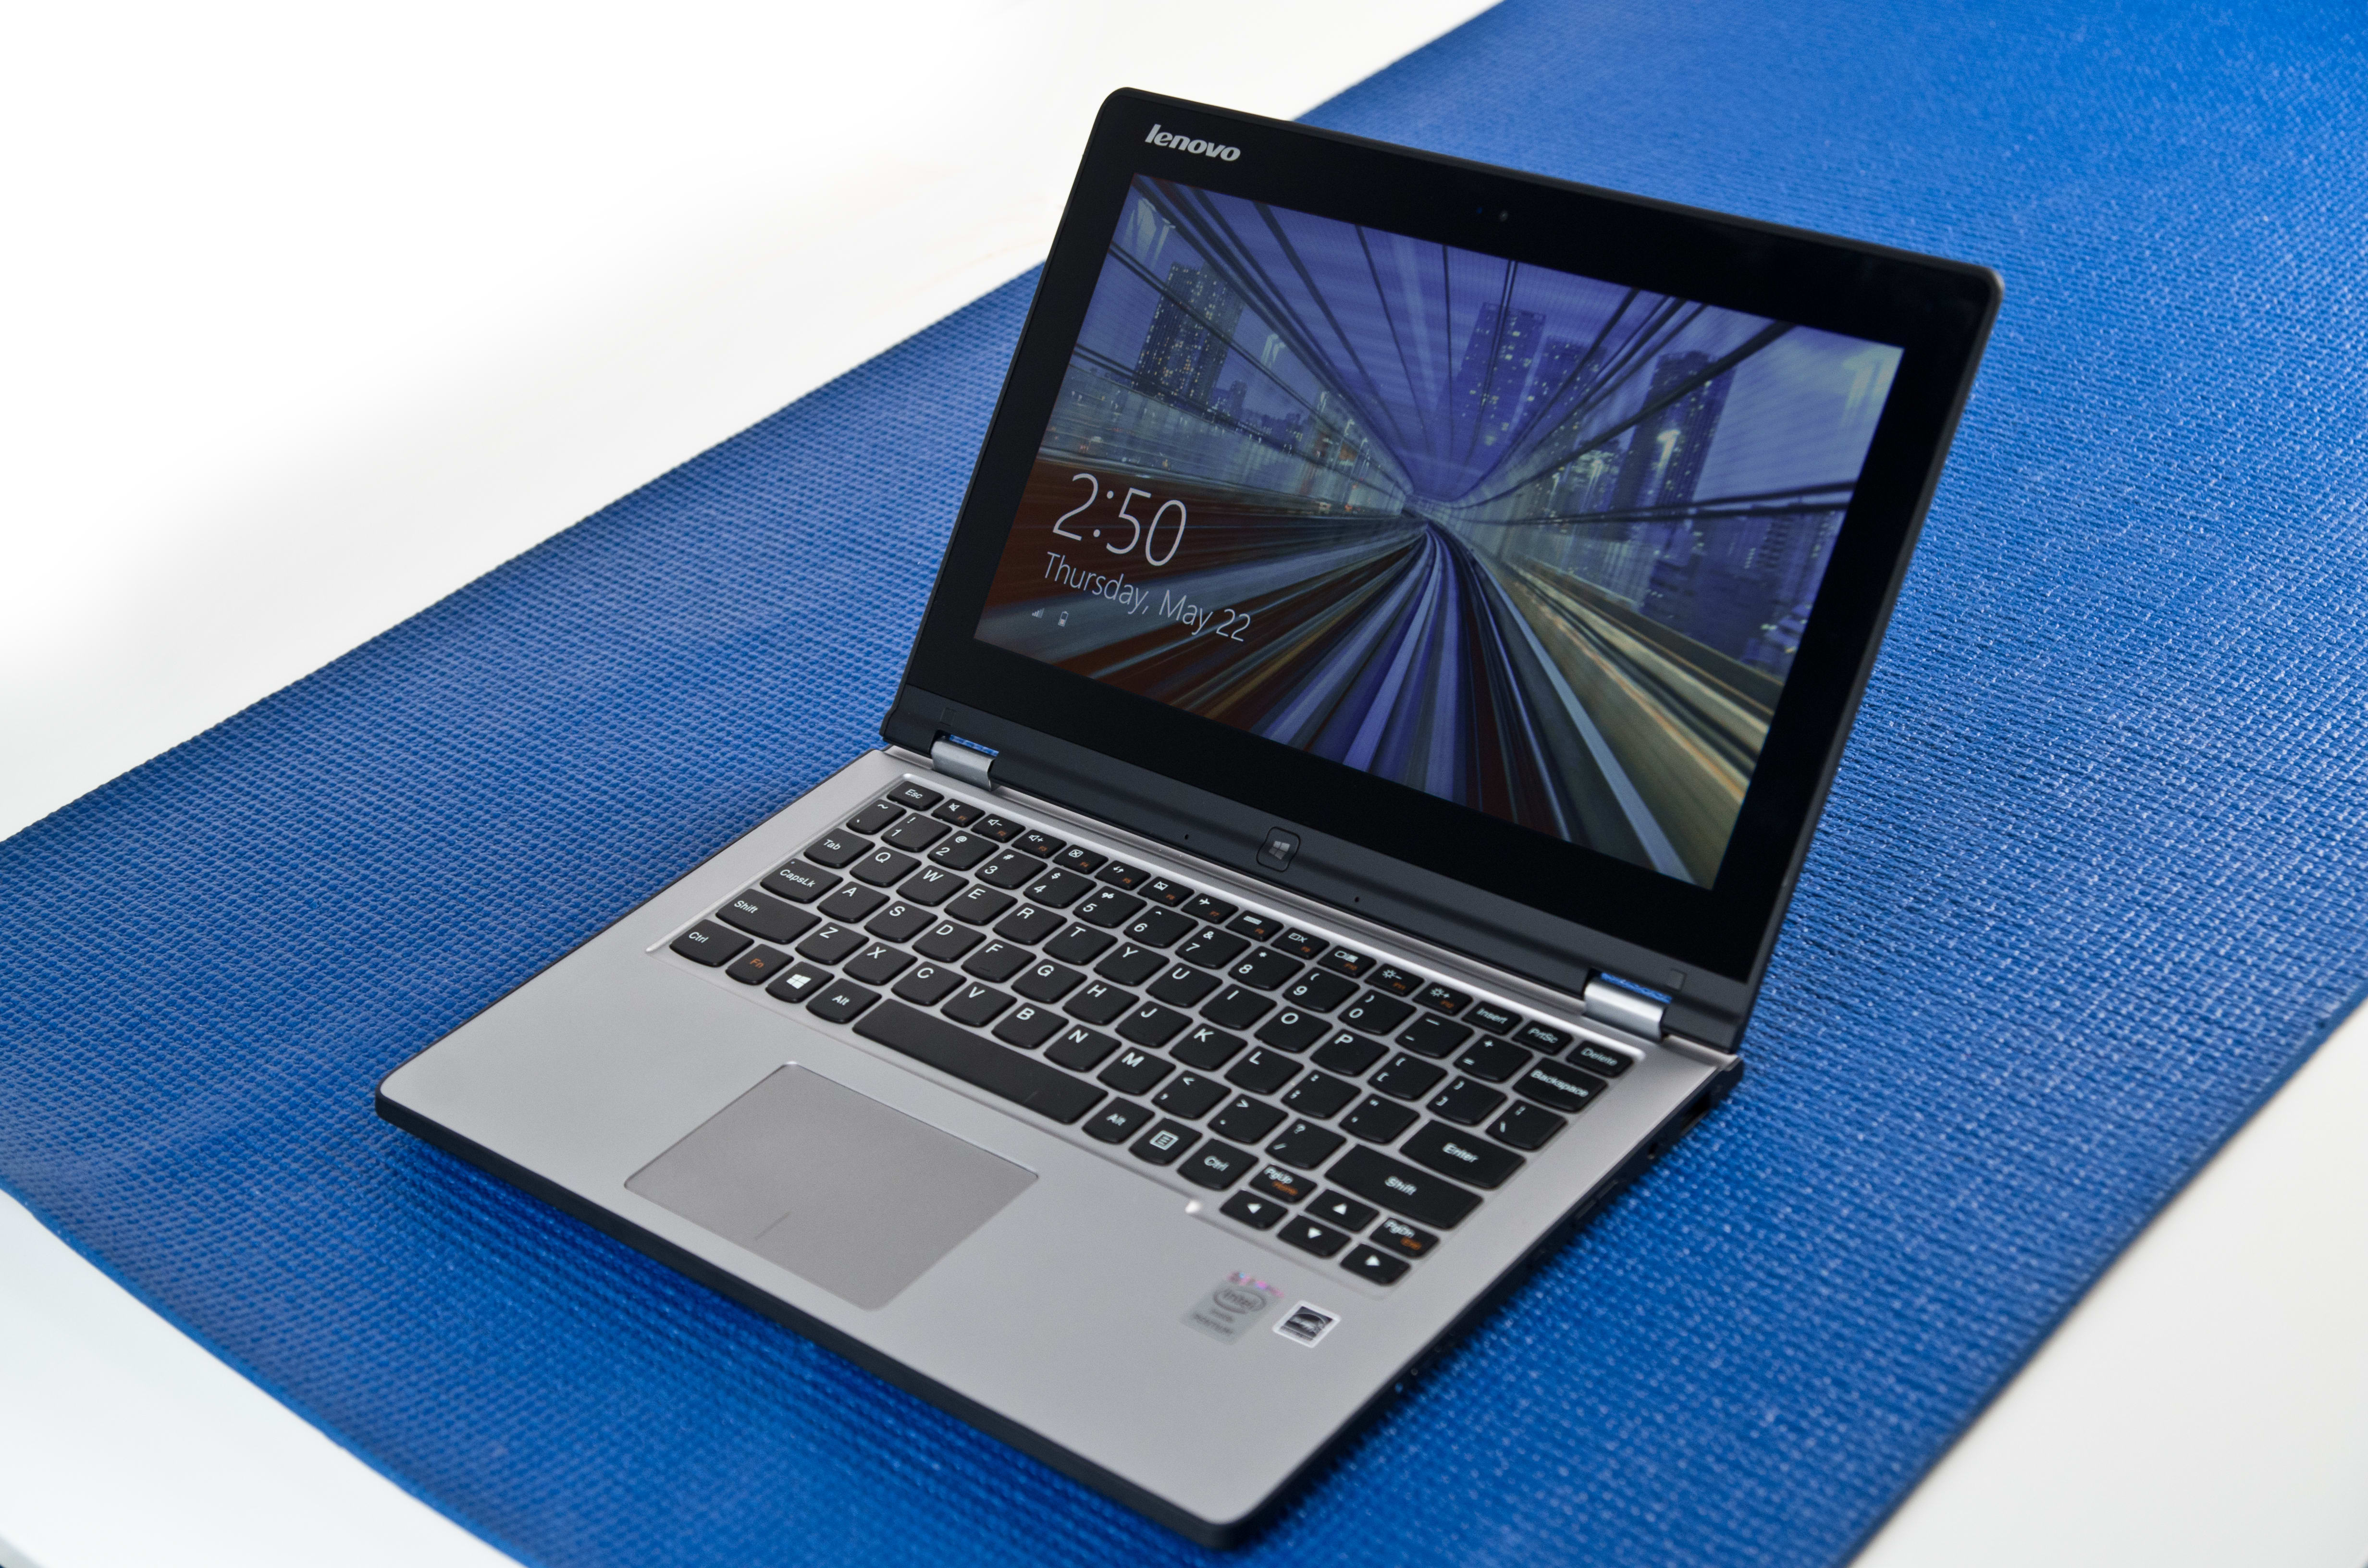 A picture of the Lenovo Yoga 2 11.